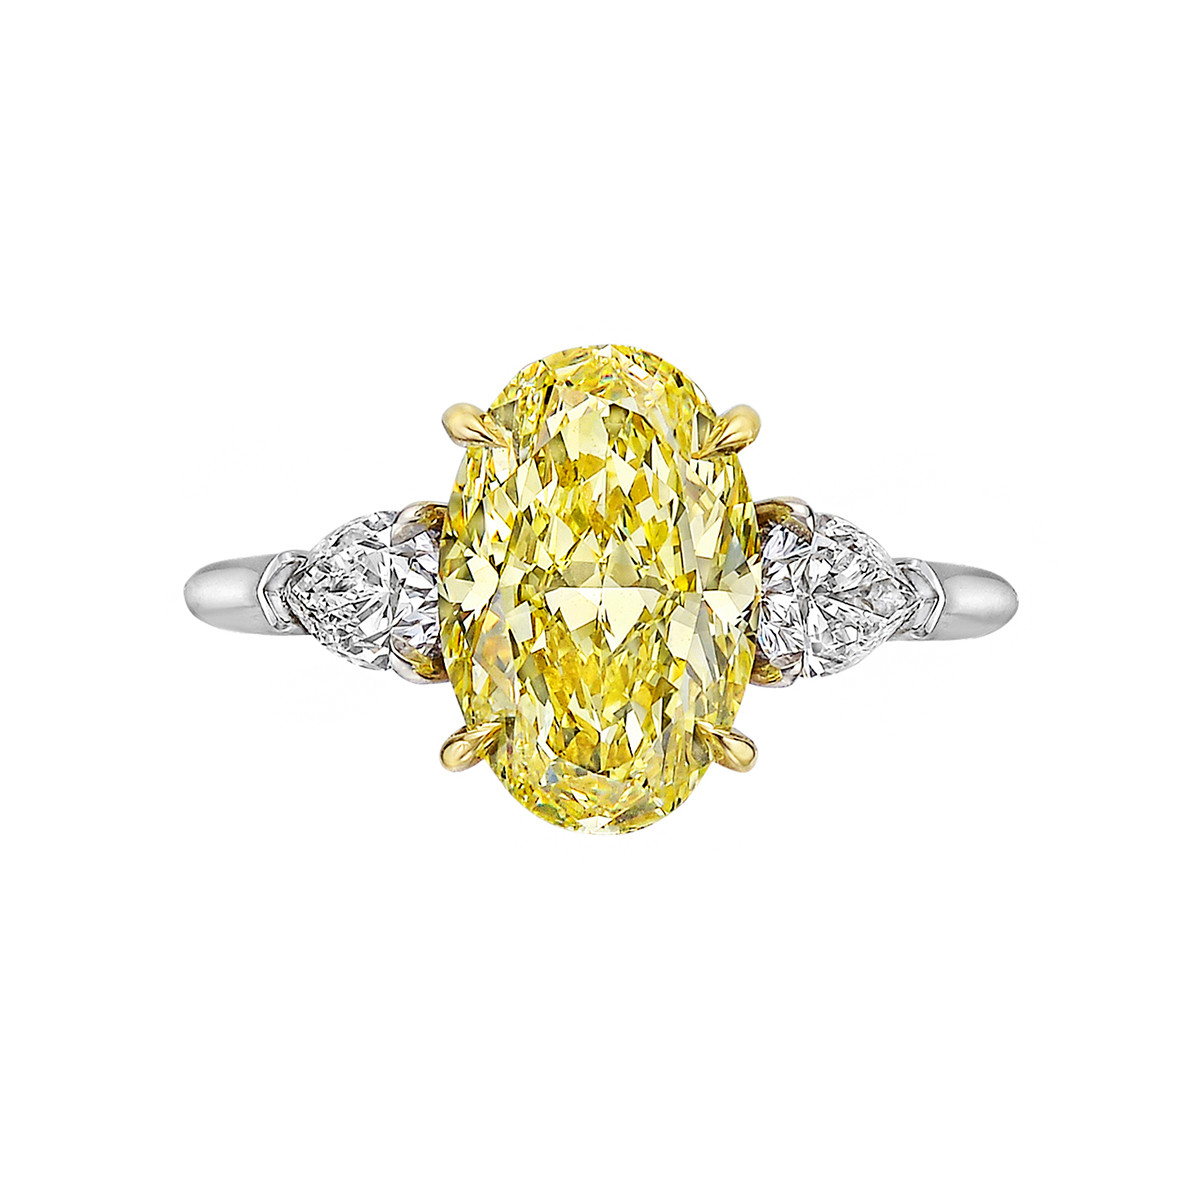 3.32ct Fancy Intense Yellow Oval Diamond Ring (VVS2)